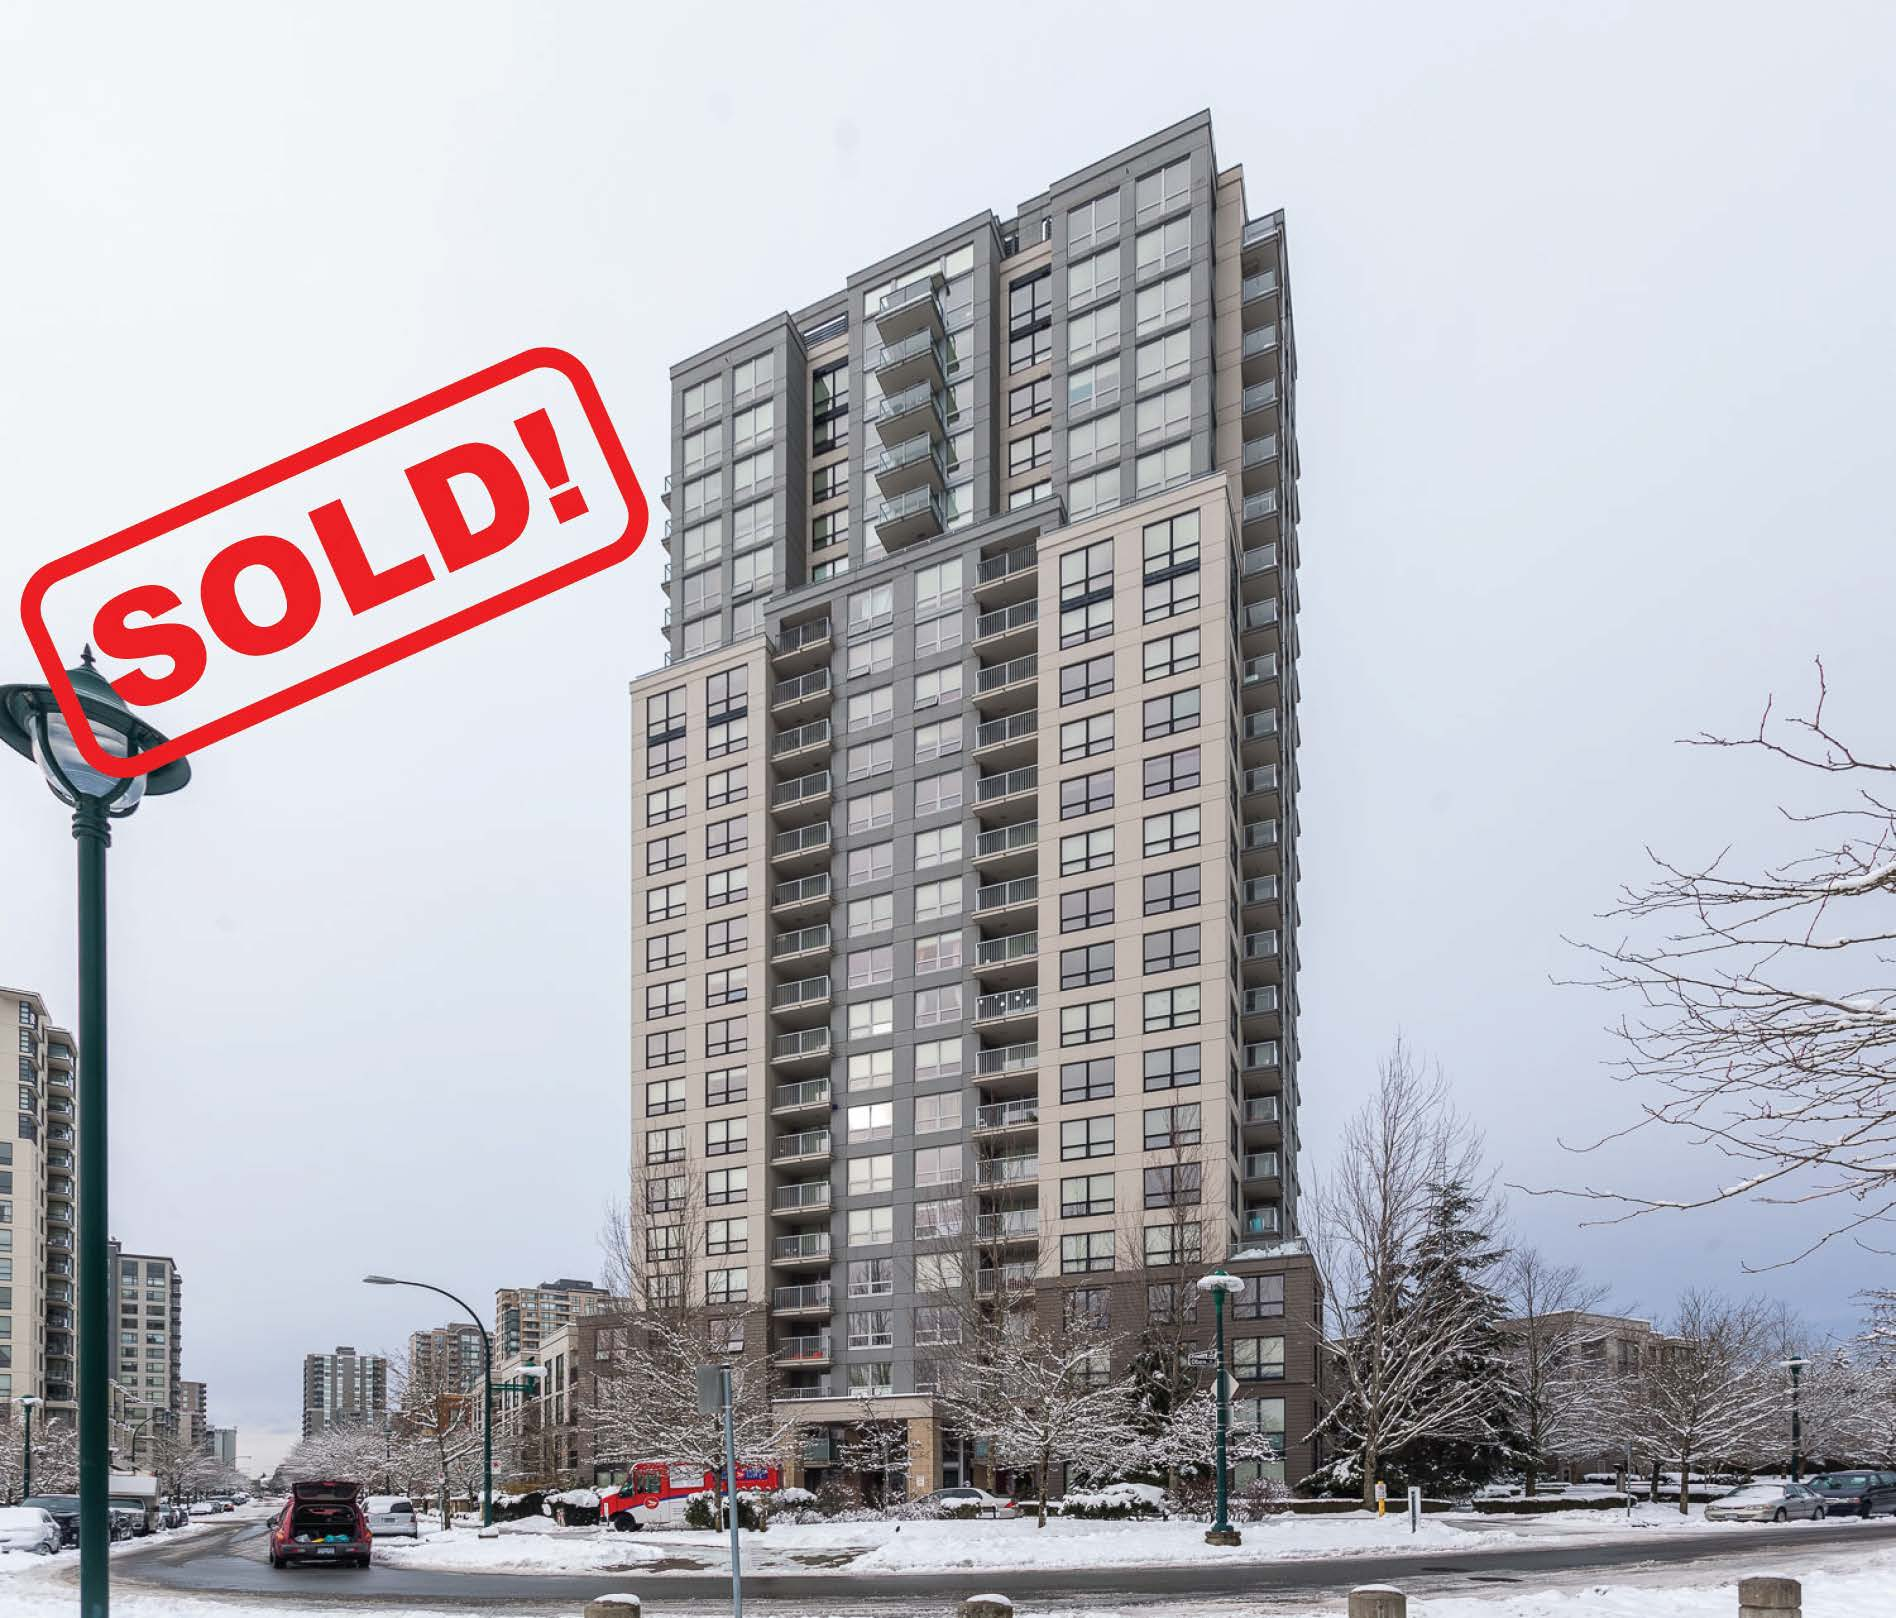 1603-3663 Crowley Dr   sold for: $530,000  2 Bed | 2 Bath | 883 SF